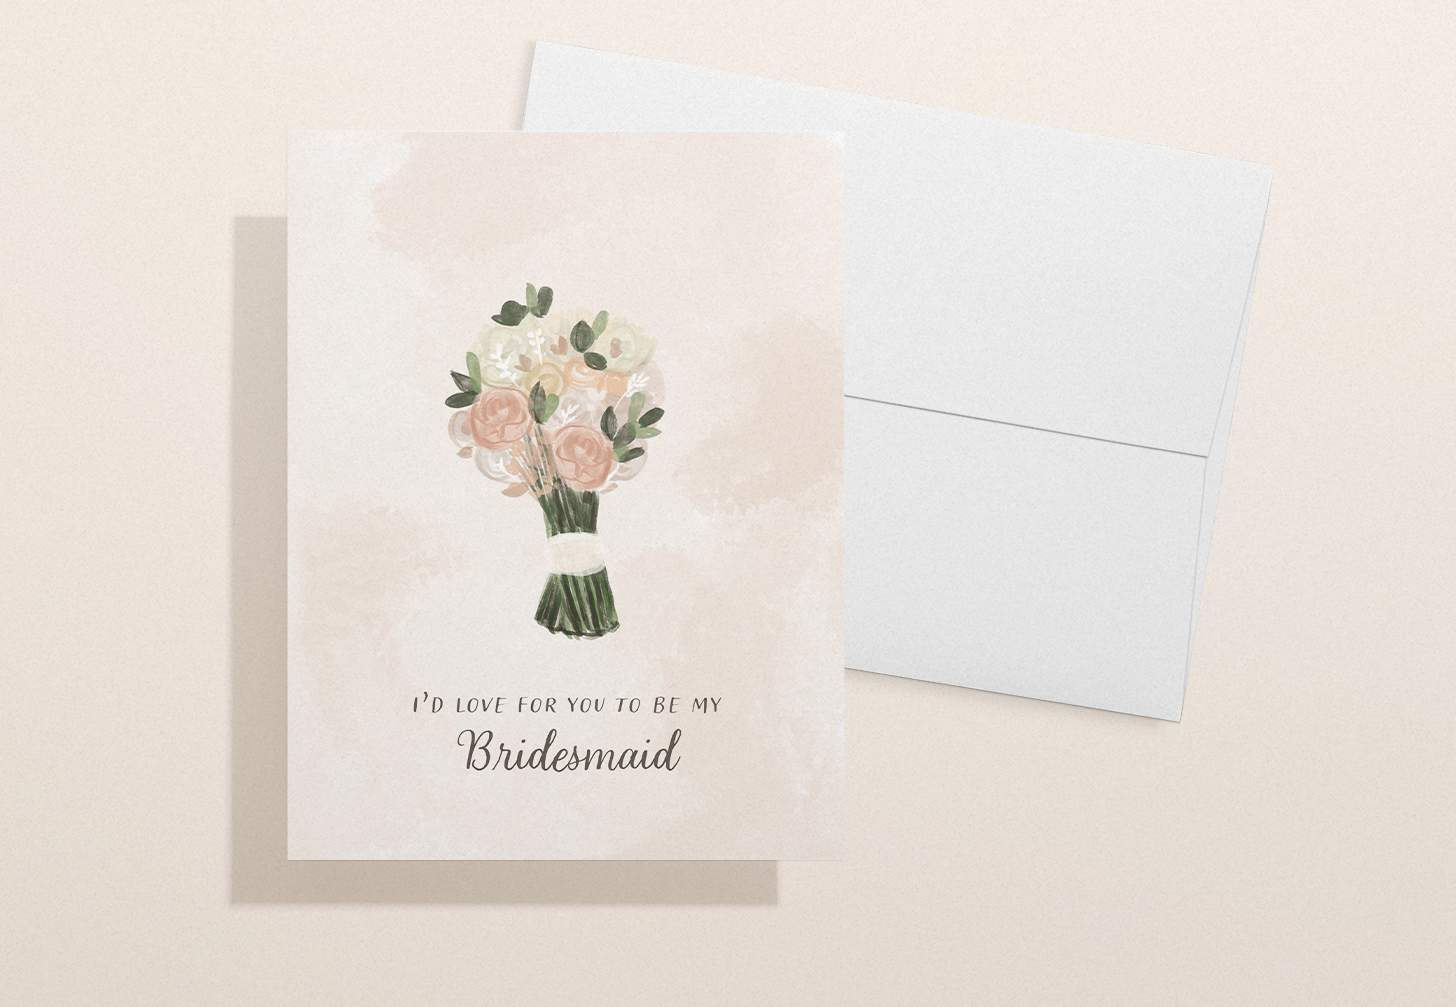 Wedding invitation card with pink, white, and green flower bouquet with white envelope